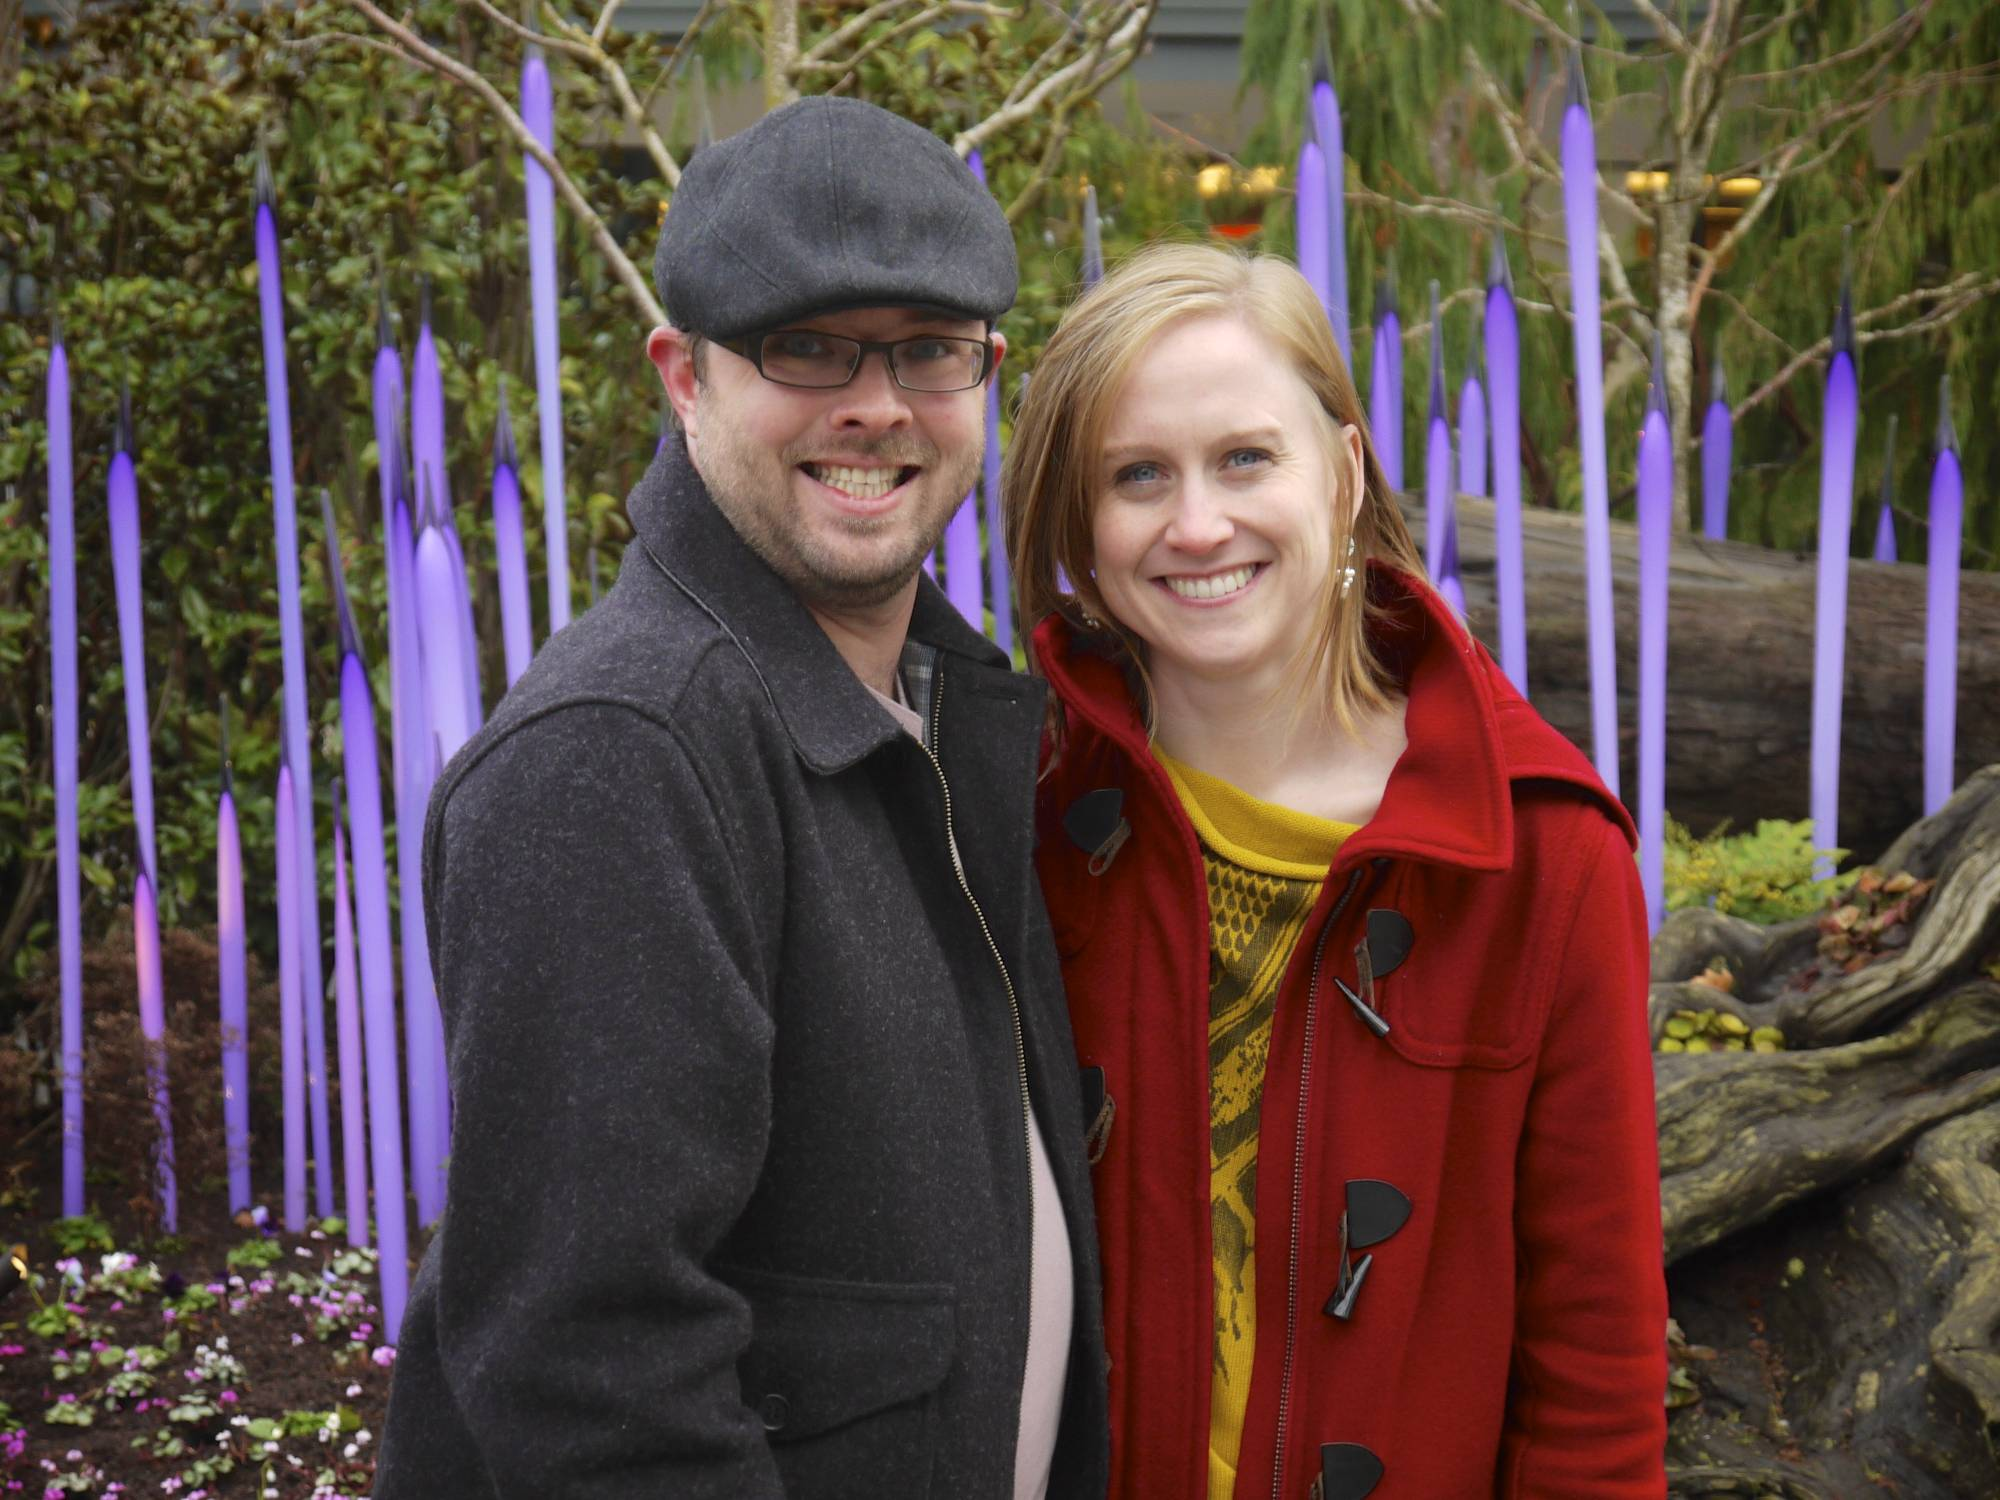 Heather and Josh at Chihuly Gardens